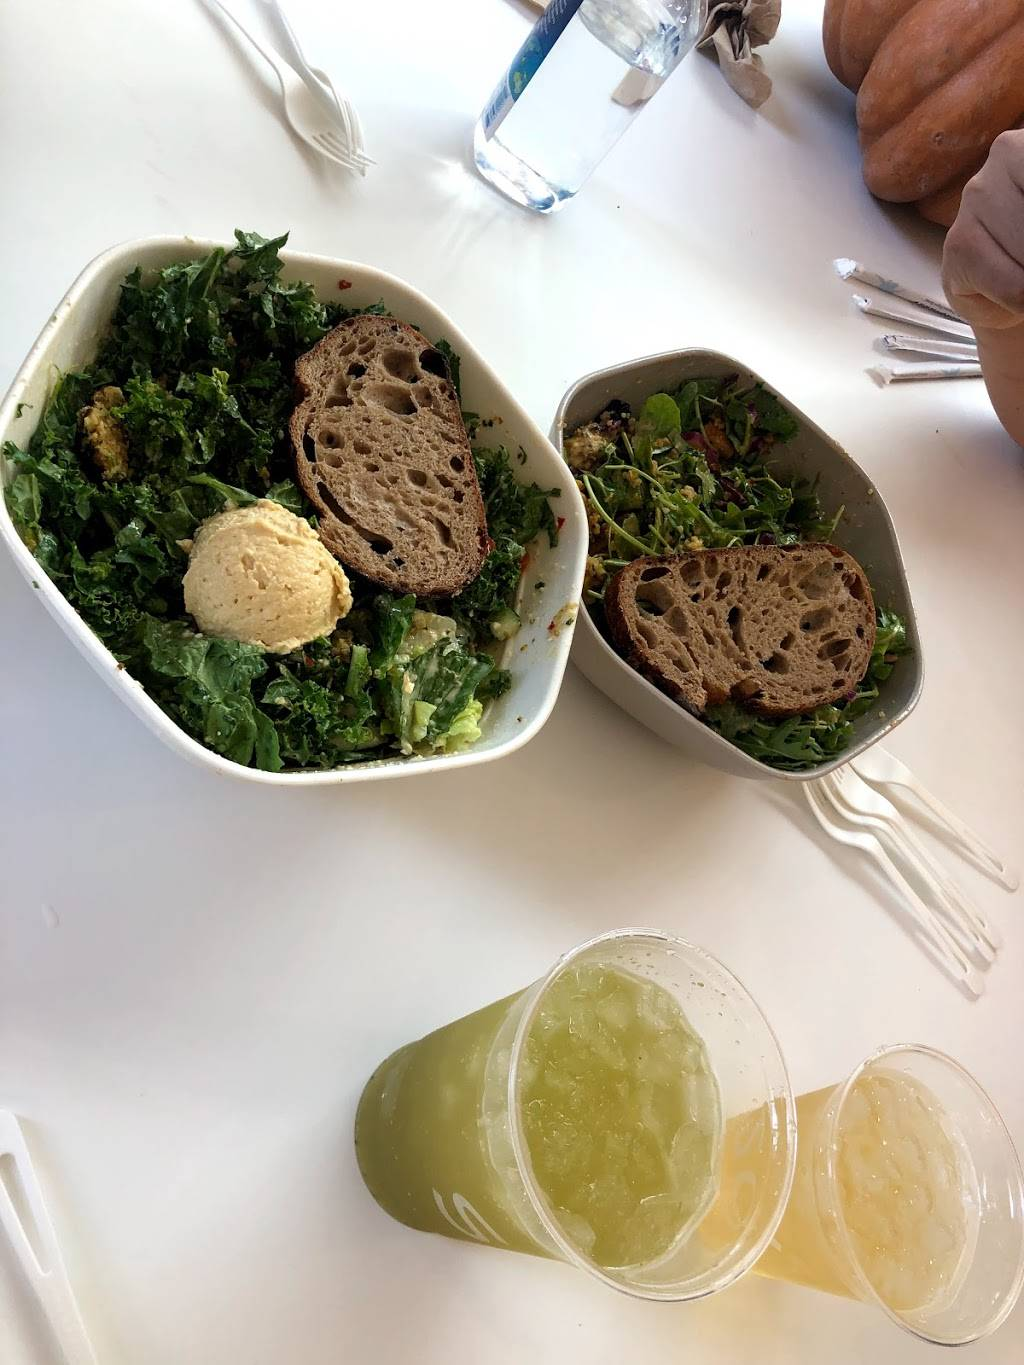 sweetgreen - meal takeaway  | Photo 3 of 8 | Address: 180 South La Brea Ave, Los Angeles, CA 90036, USA | Phone: (310) 340-6050